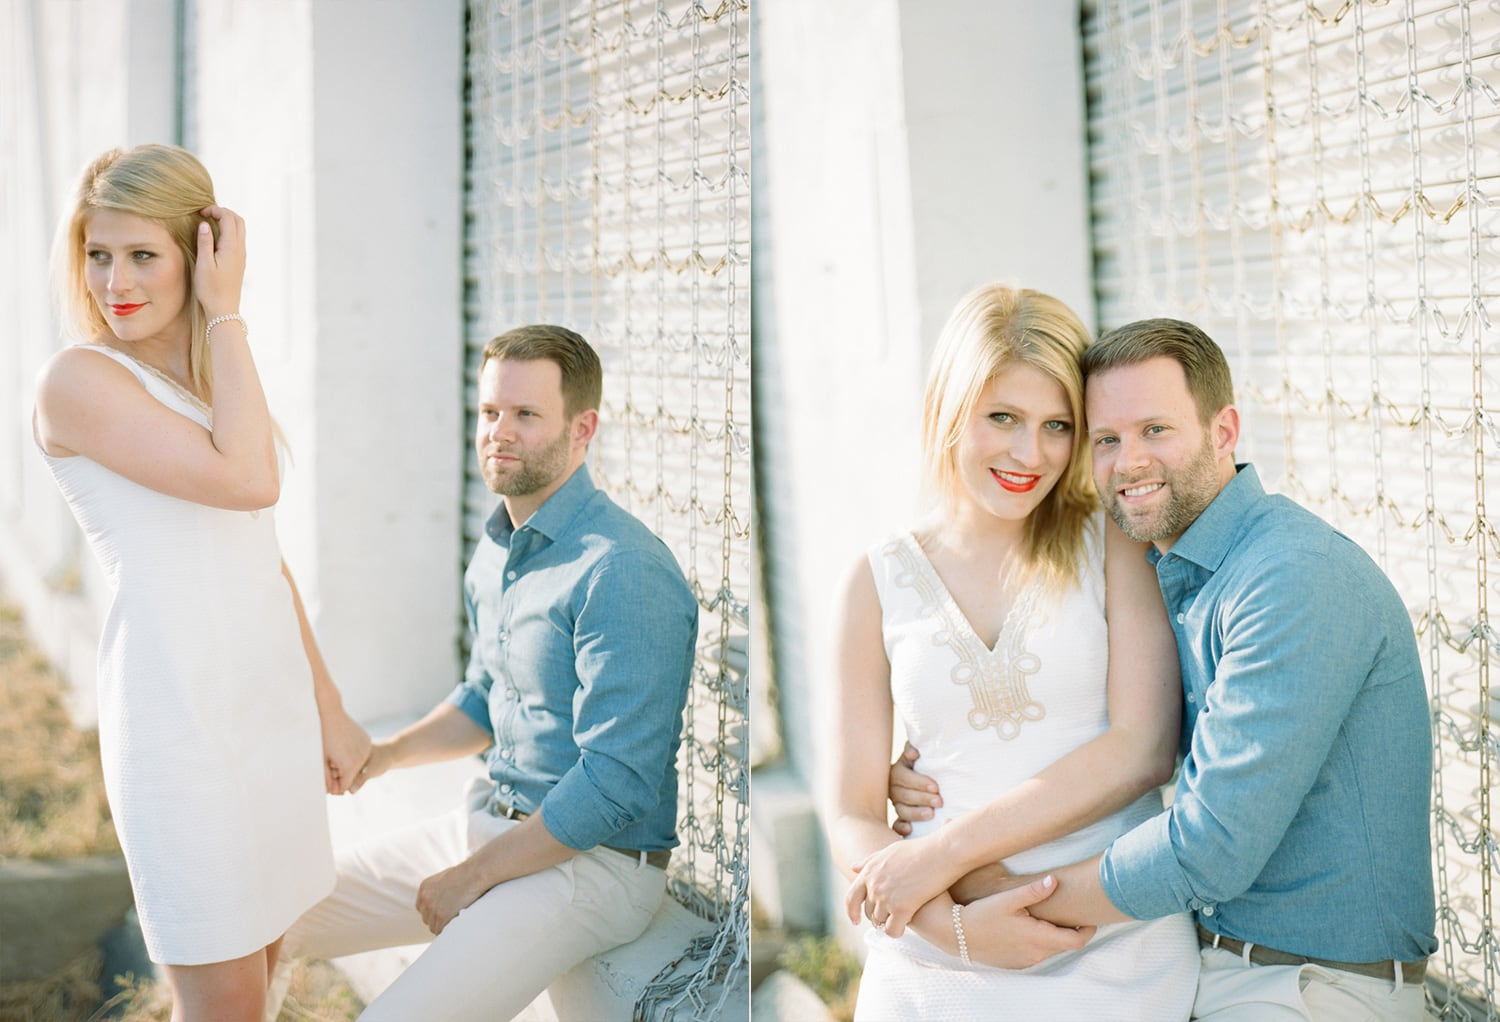 DEEP_ELLUM_TX_FILM_ENGAGEMENT_SHOOT__MATTHEW_MOORE_PHOTOGRAPHY_PAN_005.jpg